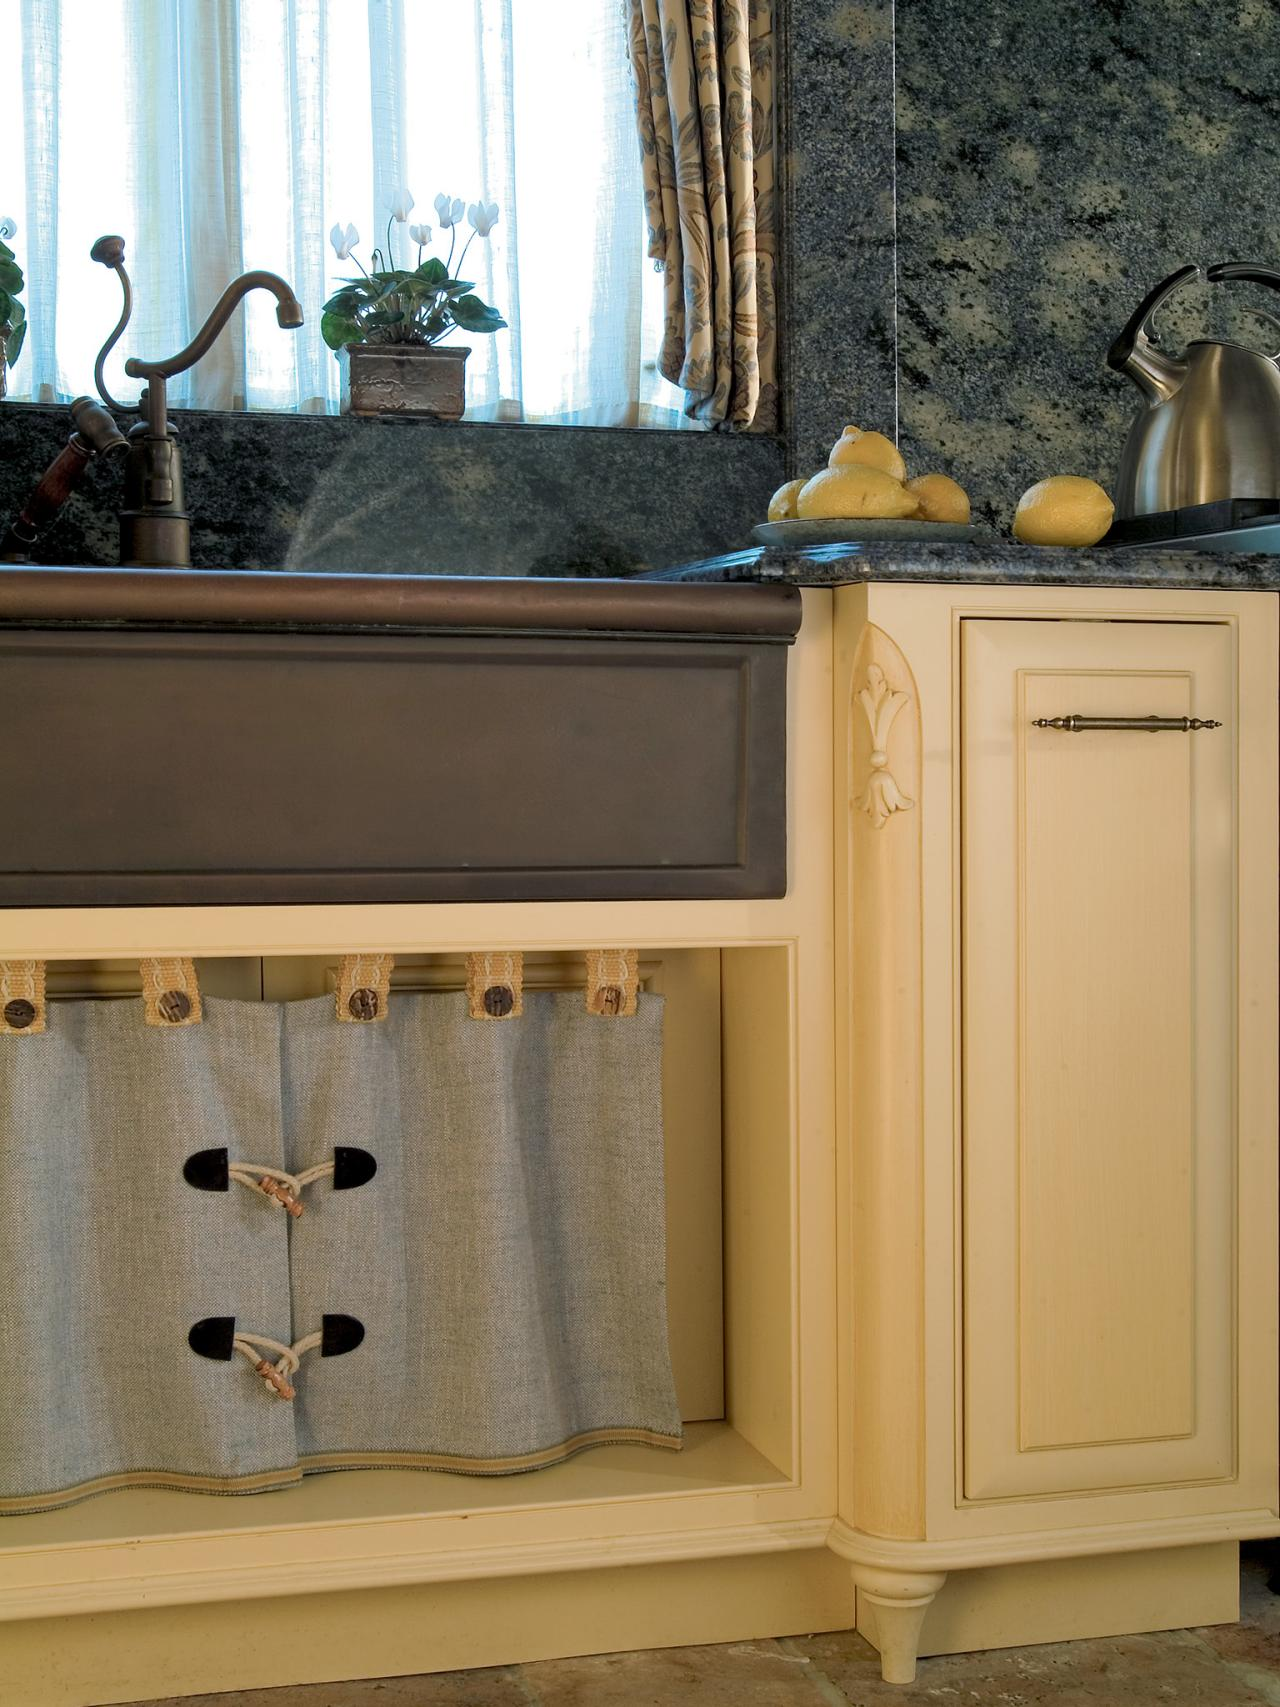 Farmhouse Kitchen Sink With Sink Skirt The Taupe Kitchen Cabinets